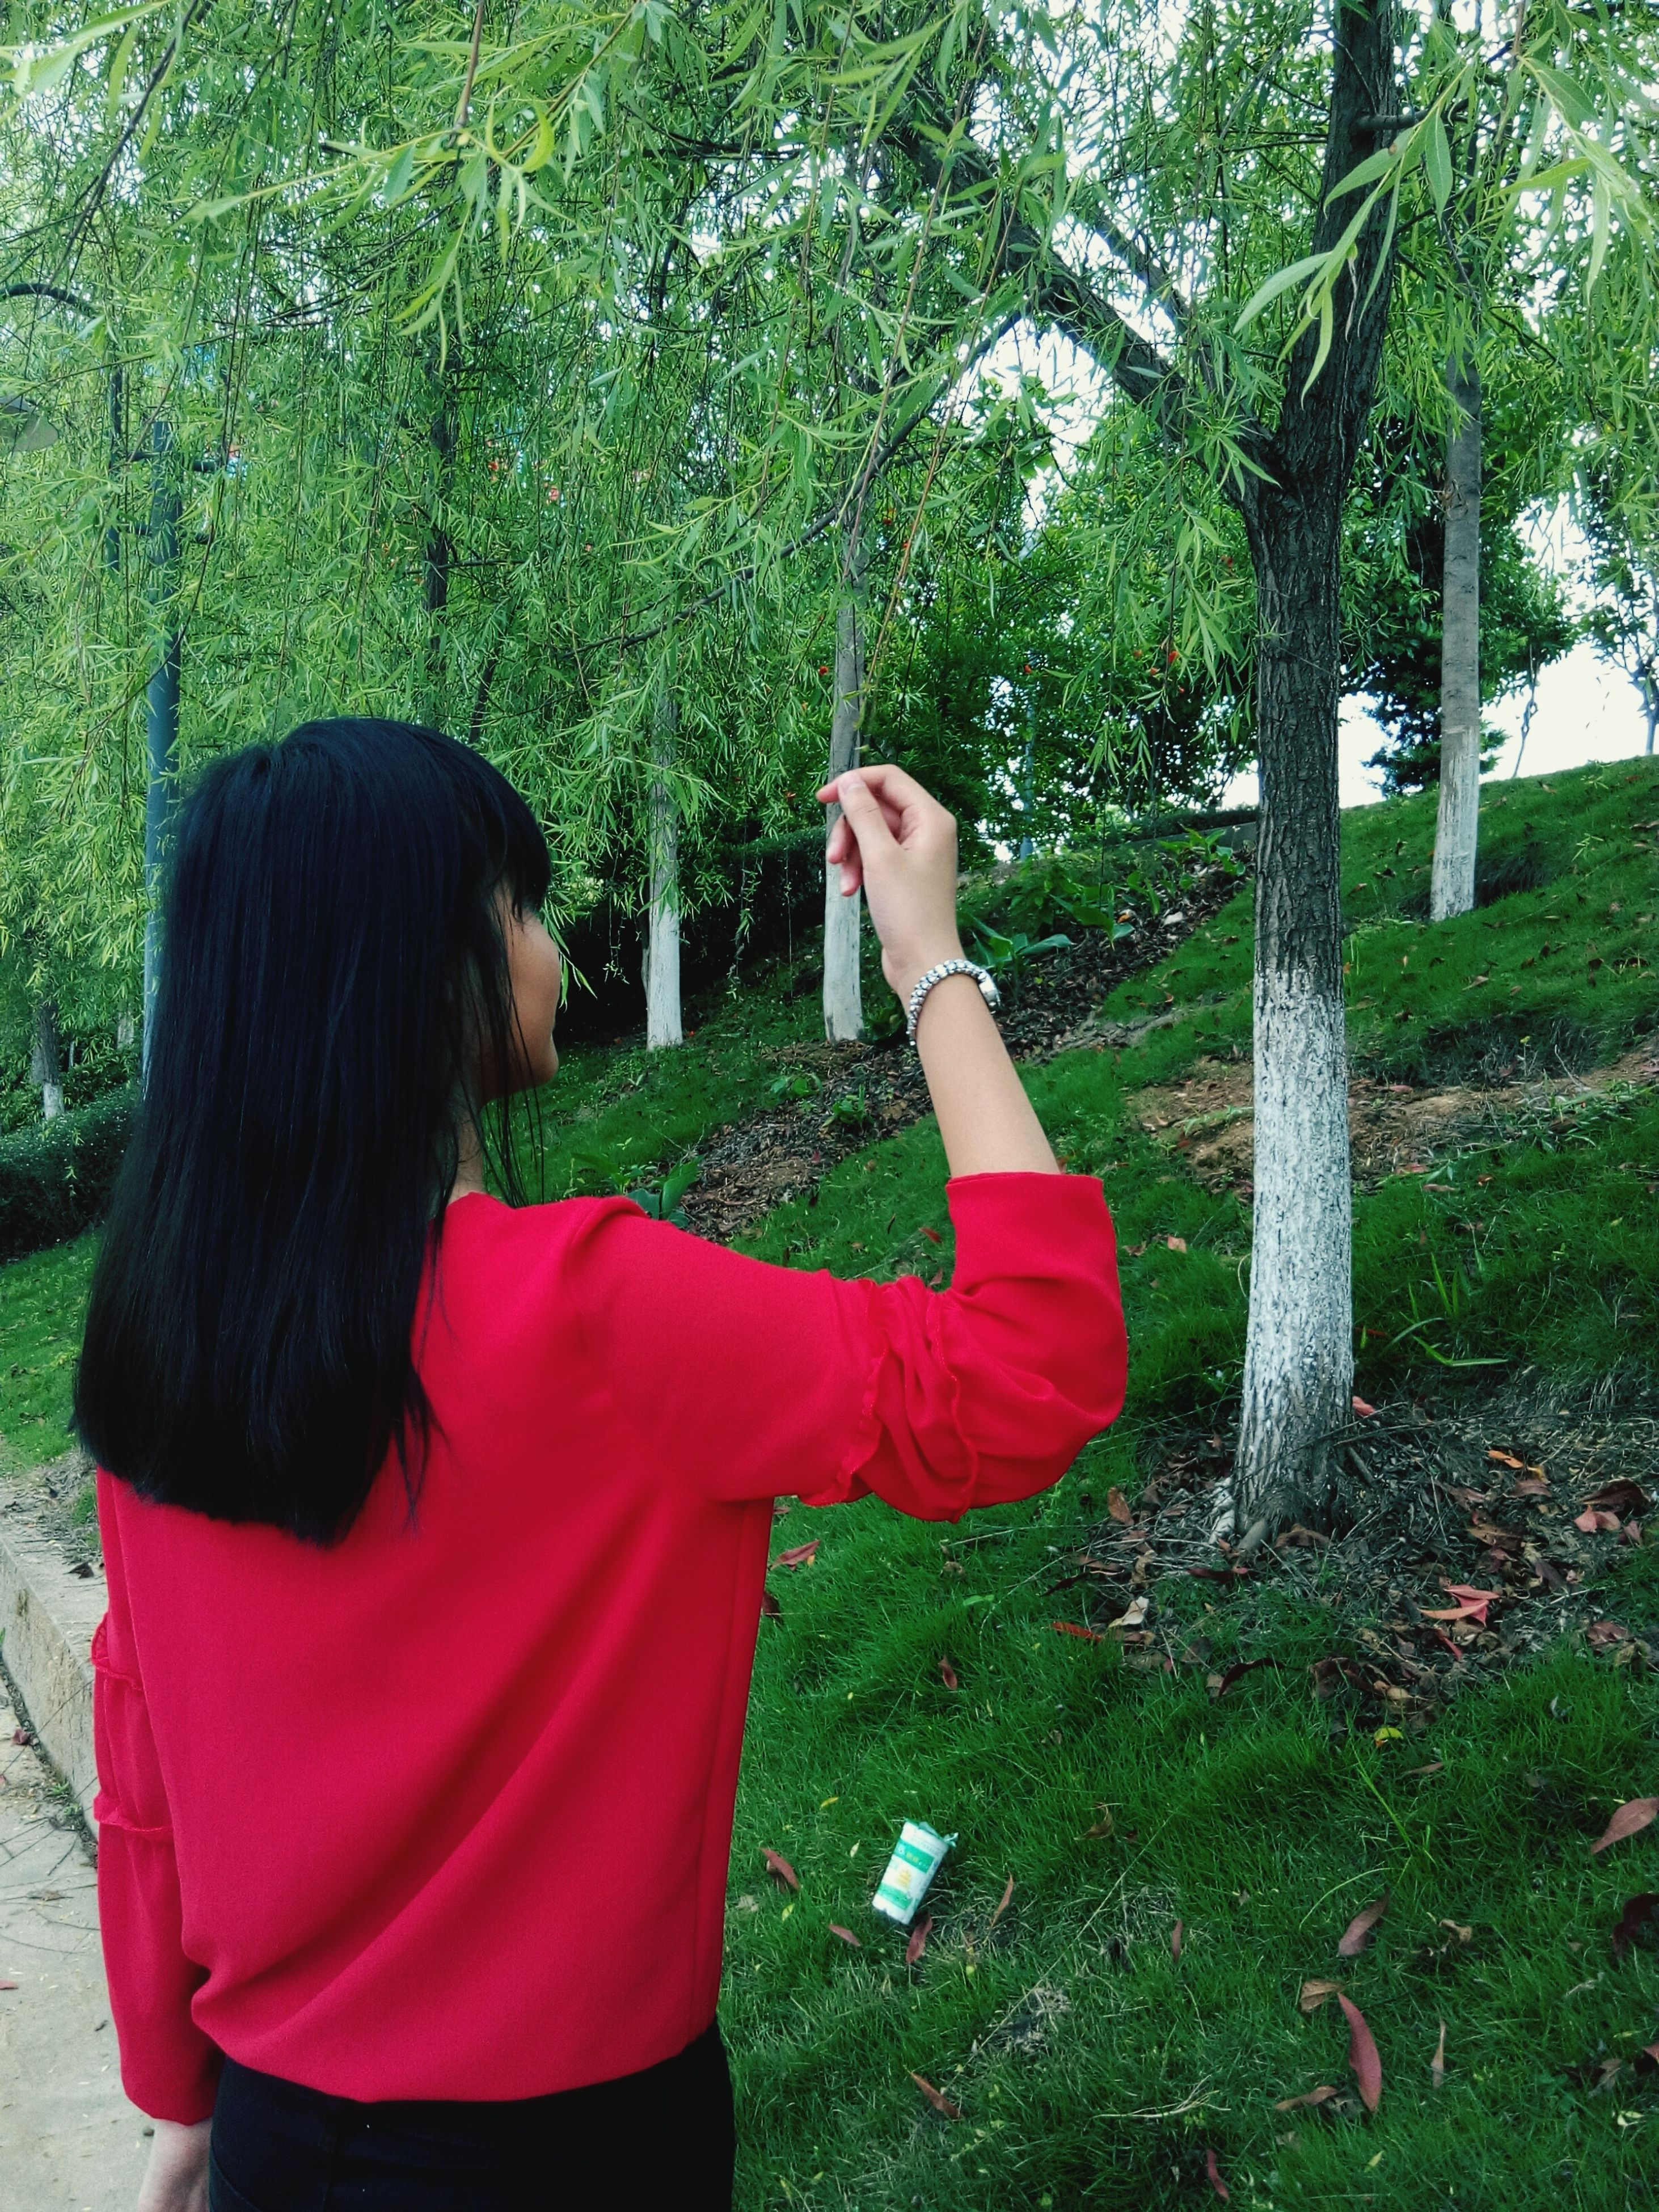 tree, lifestyles, leisure activity, casual clothing, rear view, person, young adult, long hair, young women, standing, three quarter length, park - man made space, sitting, waist up, growth, tree trunk, green color